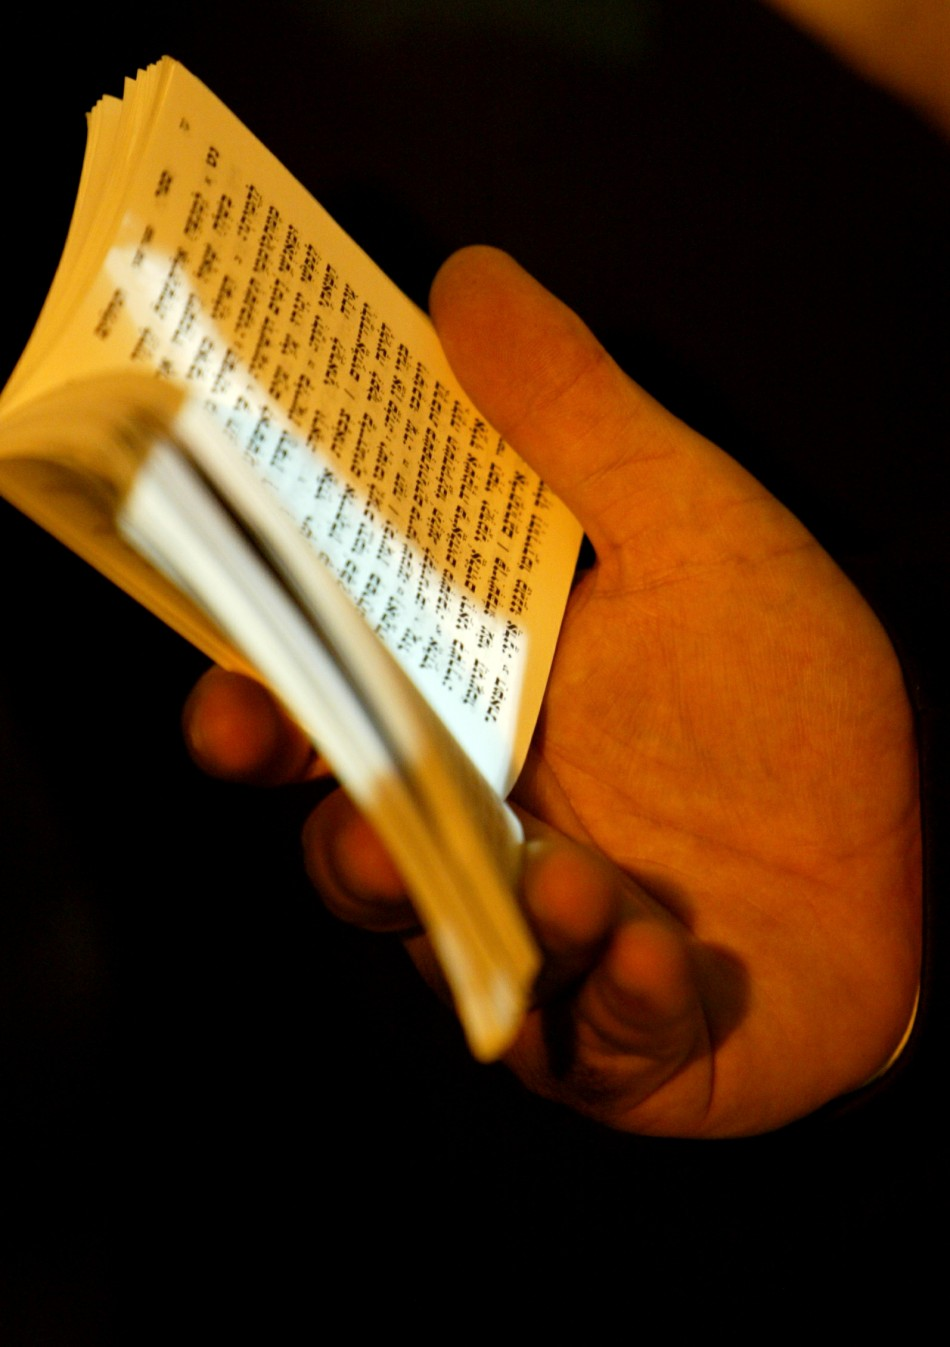 An ultra orthodox Jew holds a Torah book